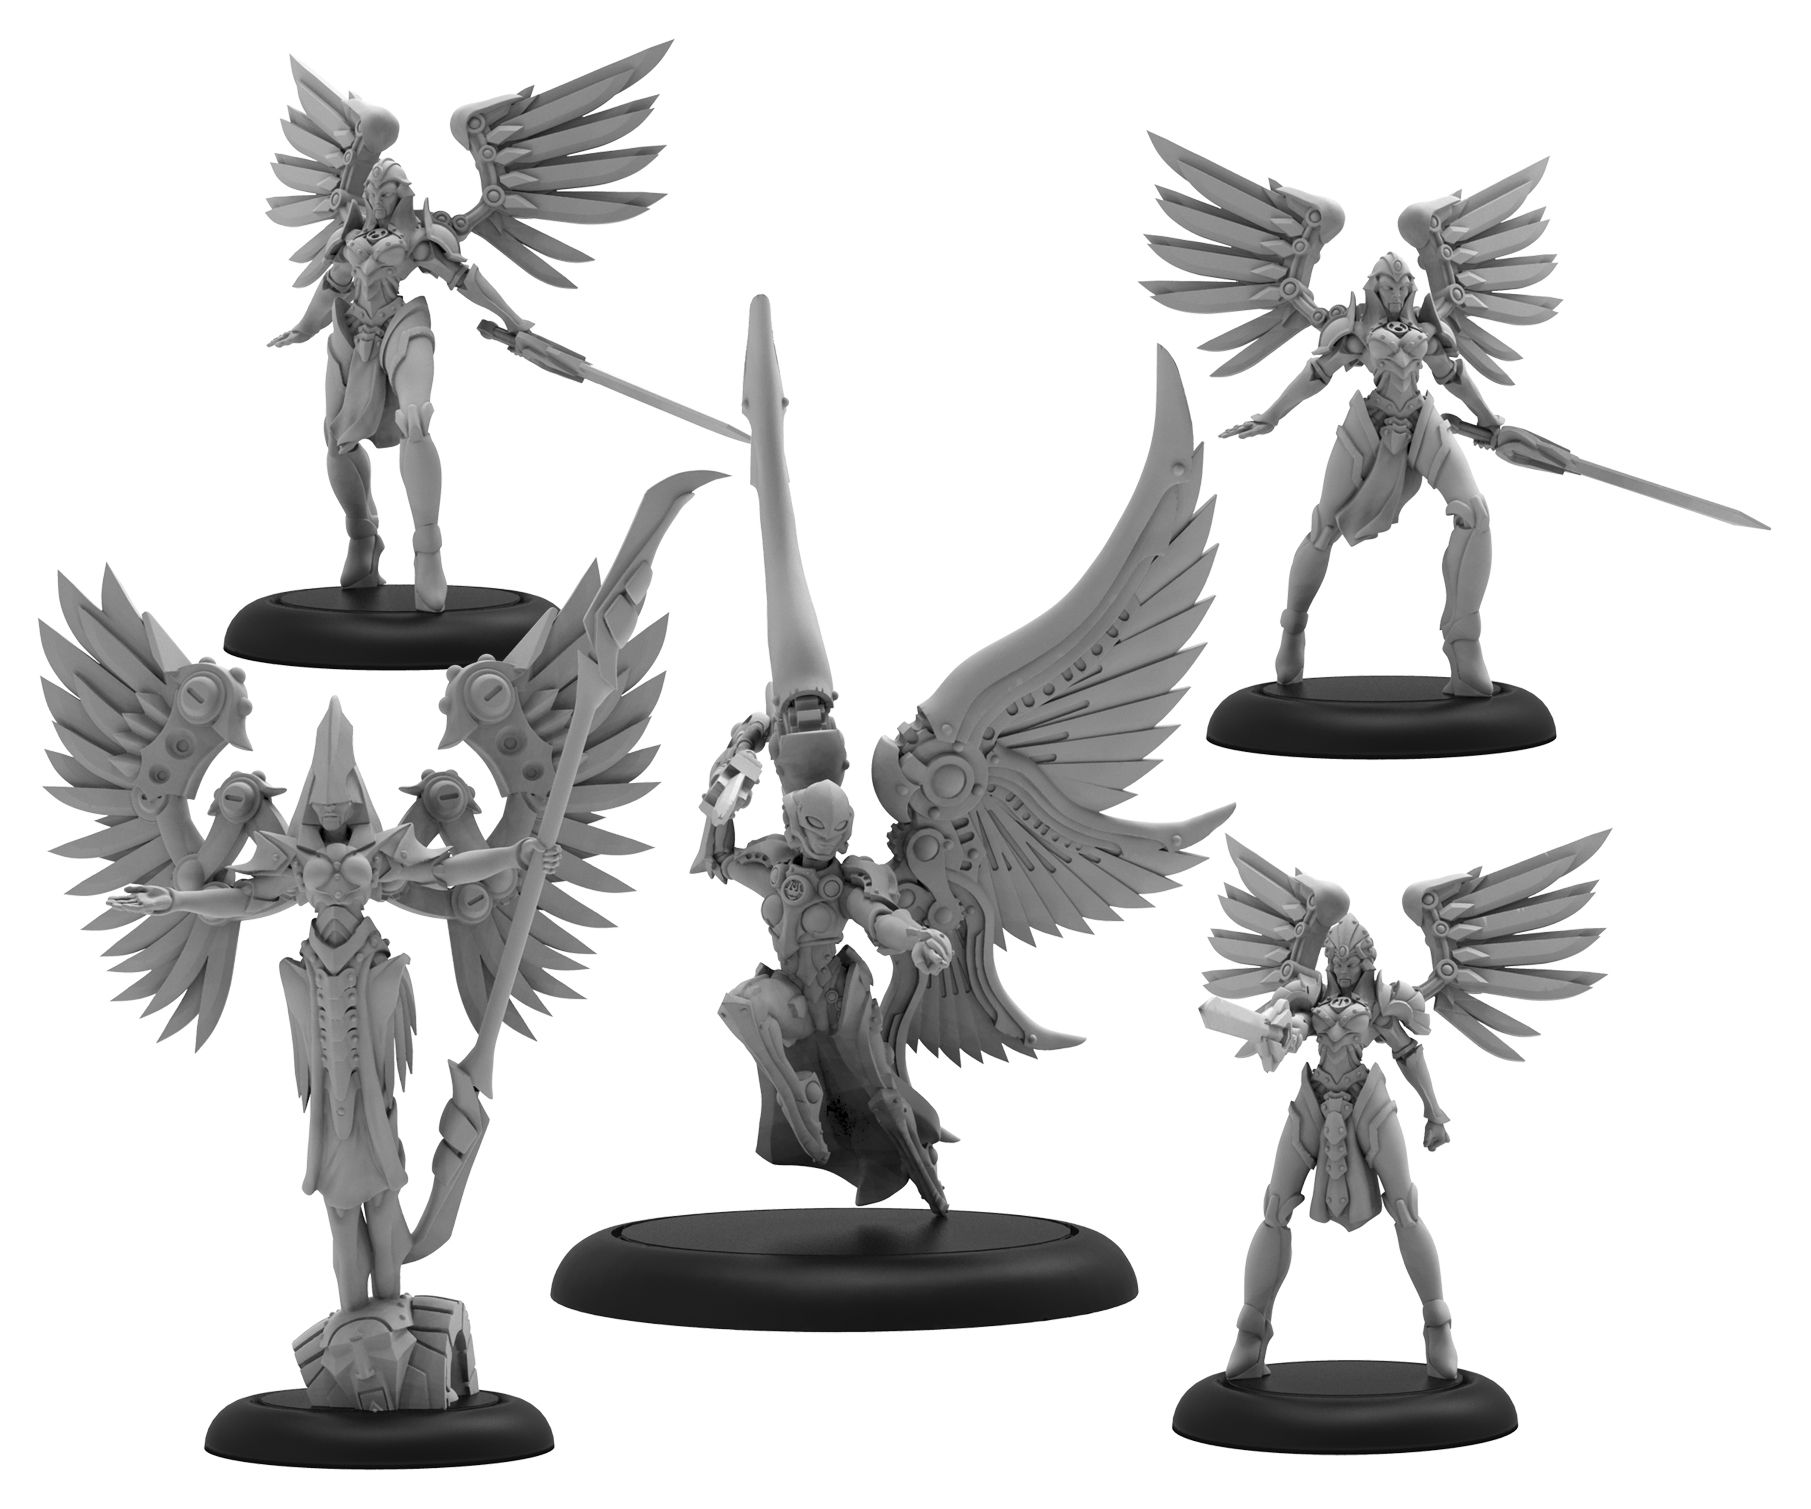 Warmachine: Convergence Of Cyriss Archnumen Aurora Mercenary Warcaster Solo Unit (resin And White Metal)